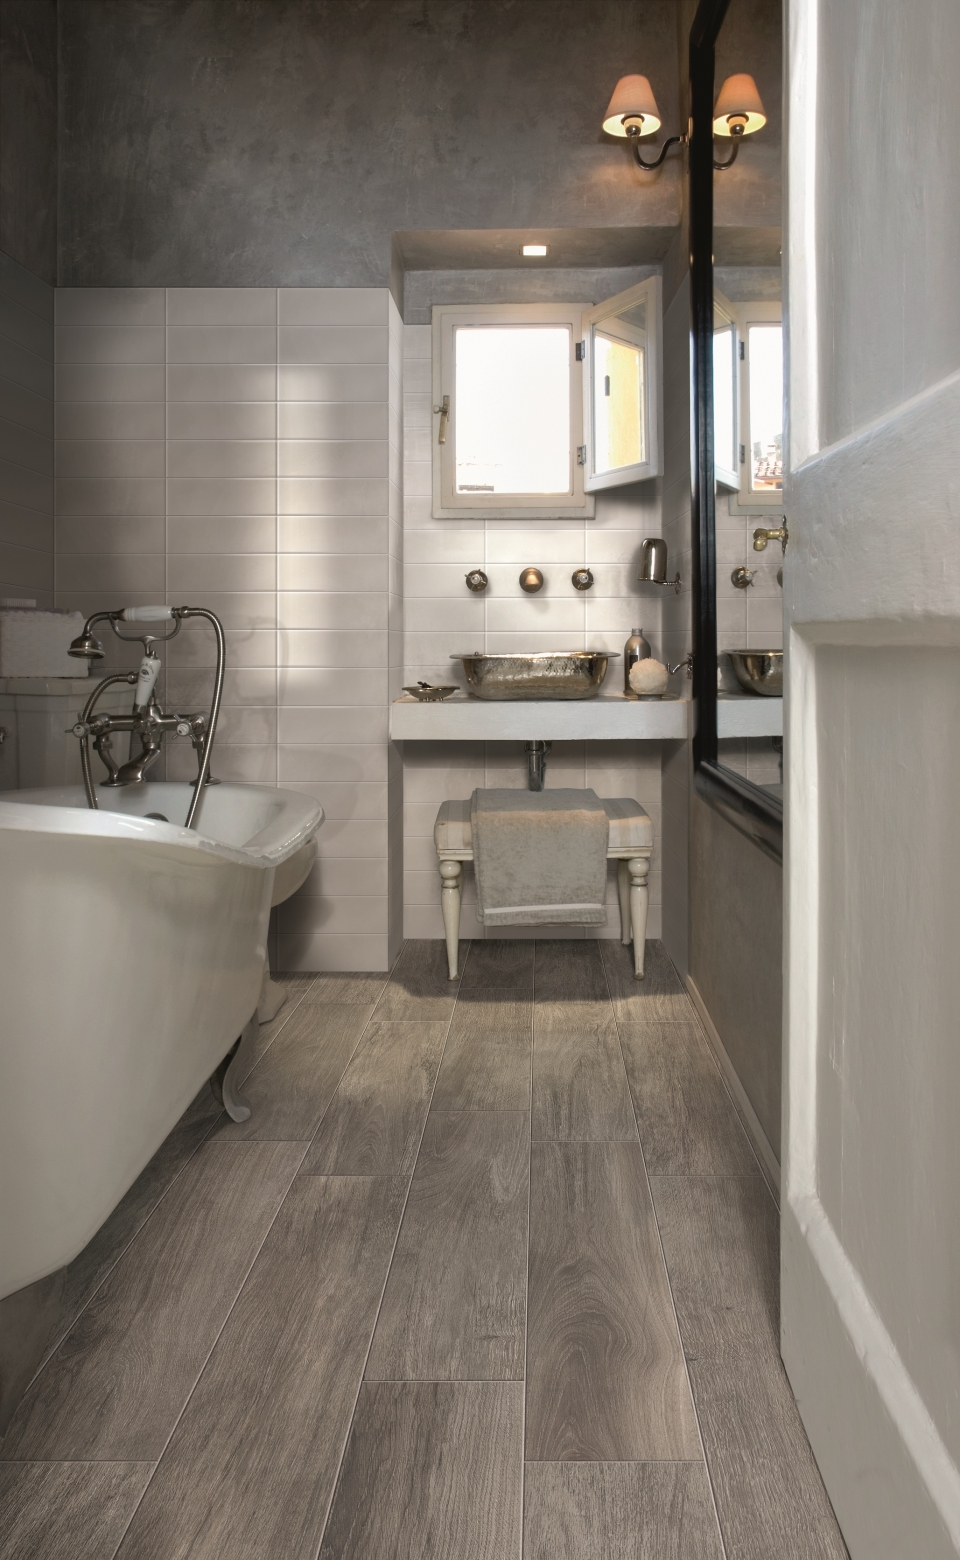 25 pictures and ideas of wood effect bathroom floor tile 1 2 3 dailygadgetfo Choice Image